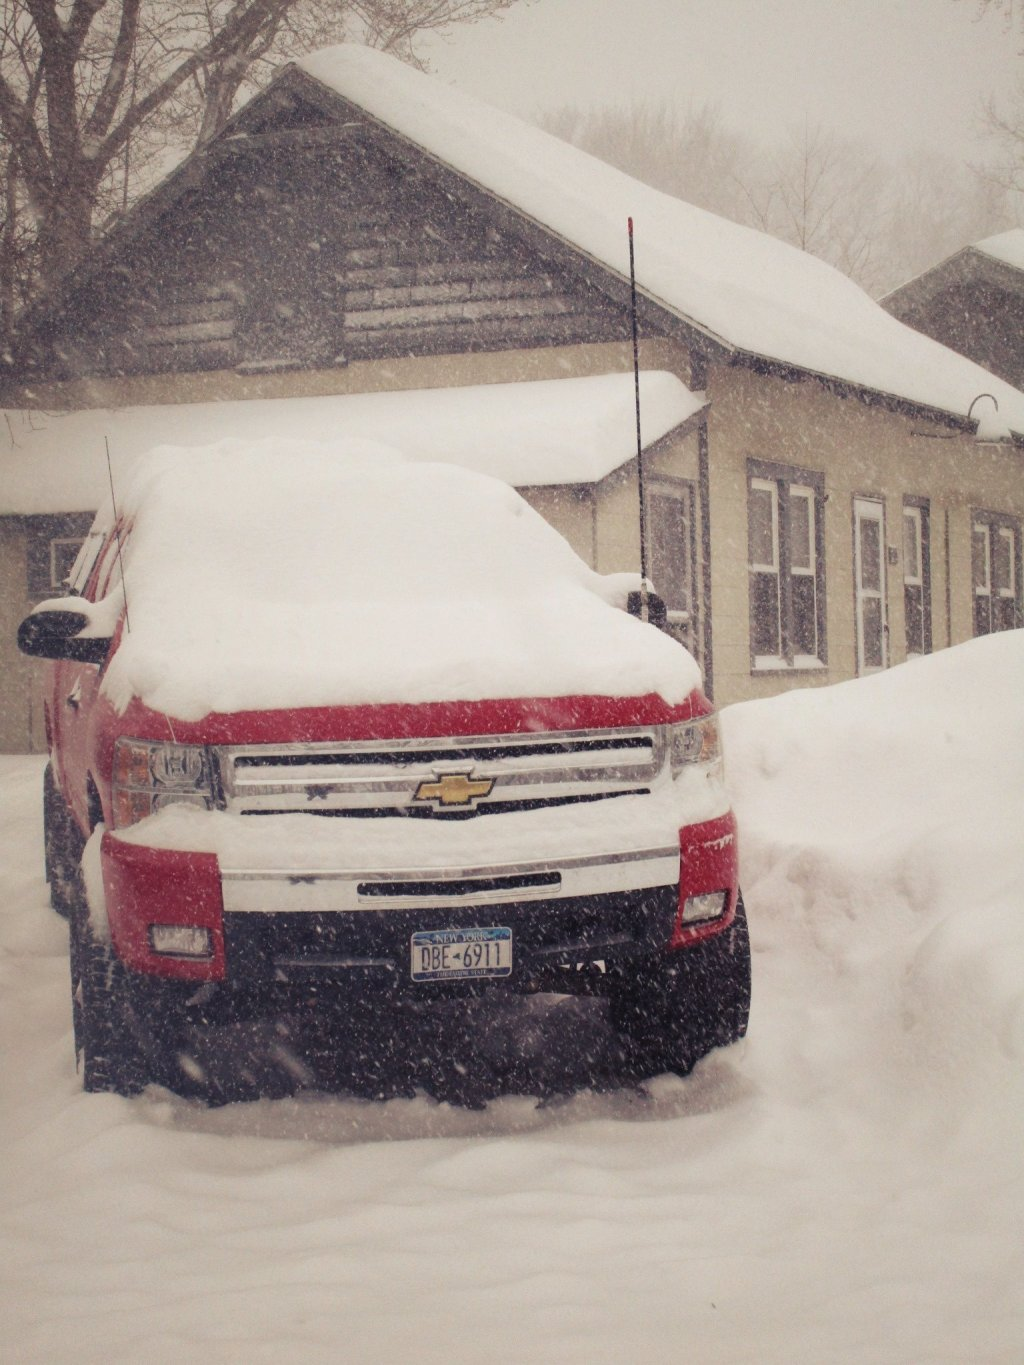 Photo: Keeping Snow Off Big Red A Futile Effort